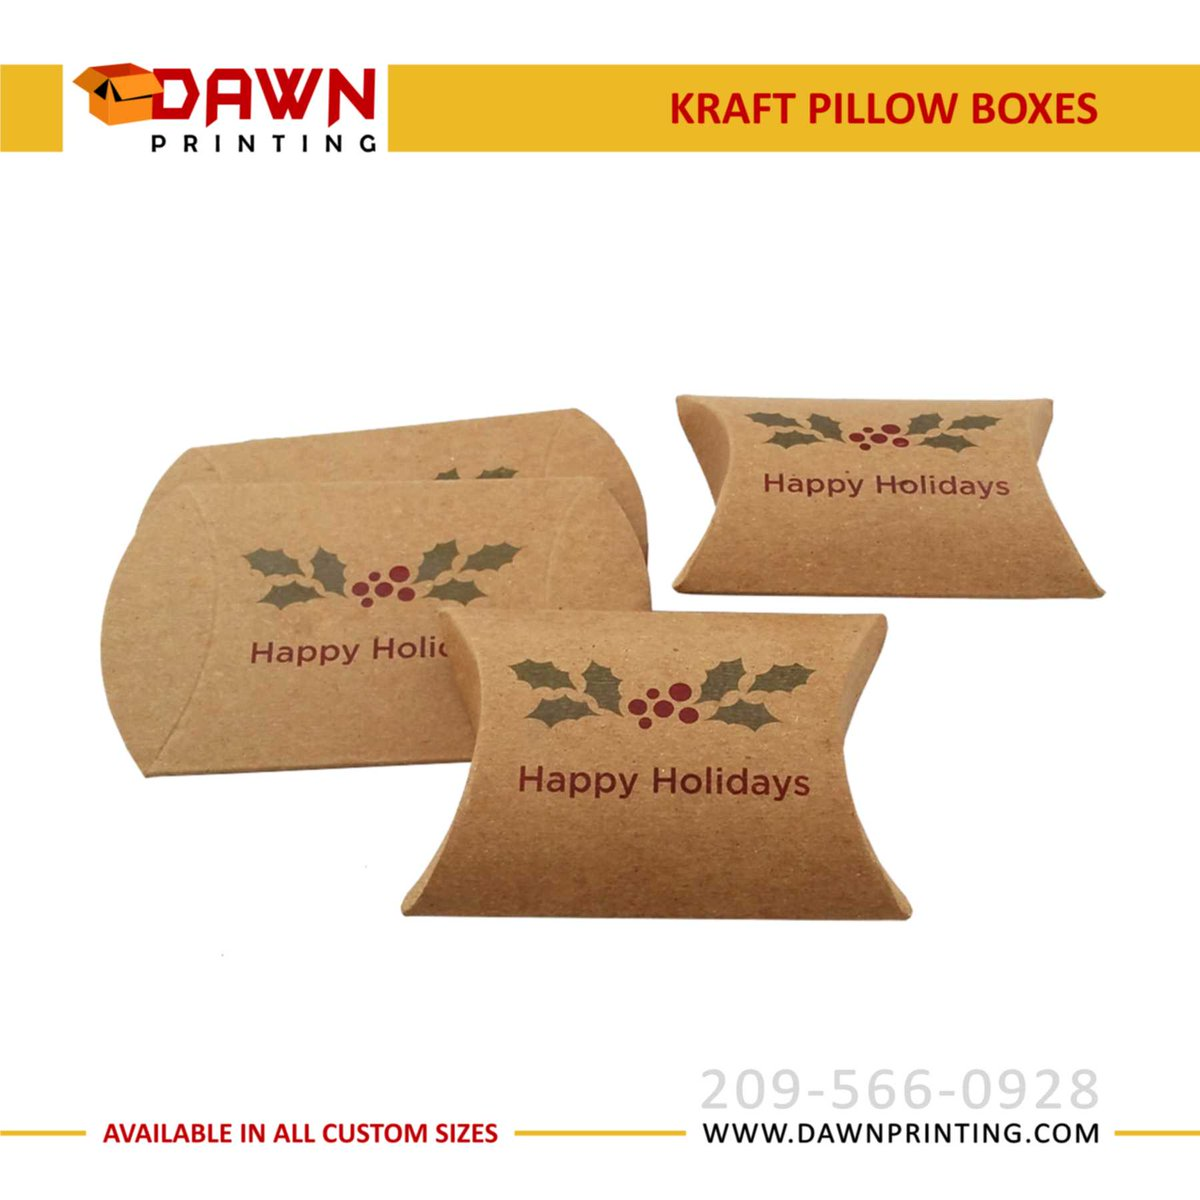 =======Cardboard Display Boxes Printing======== Contact Now: 209-566-0928 Get 20% discount on  https:// goo.gl/FkR4vN  &nbsp;   #USA #Printing #SDLive<br>http://pic.twitter.com/EEIOXnMagd